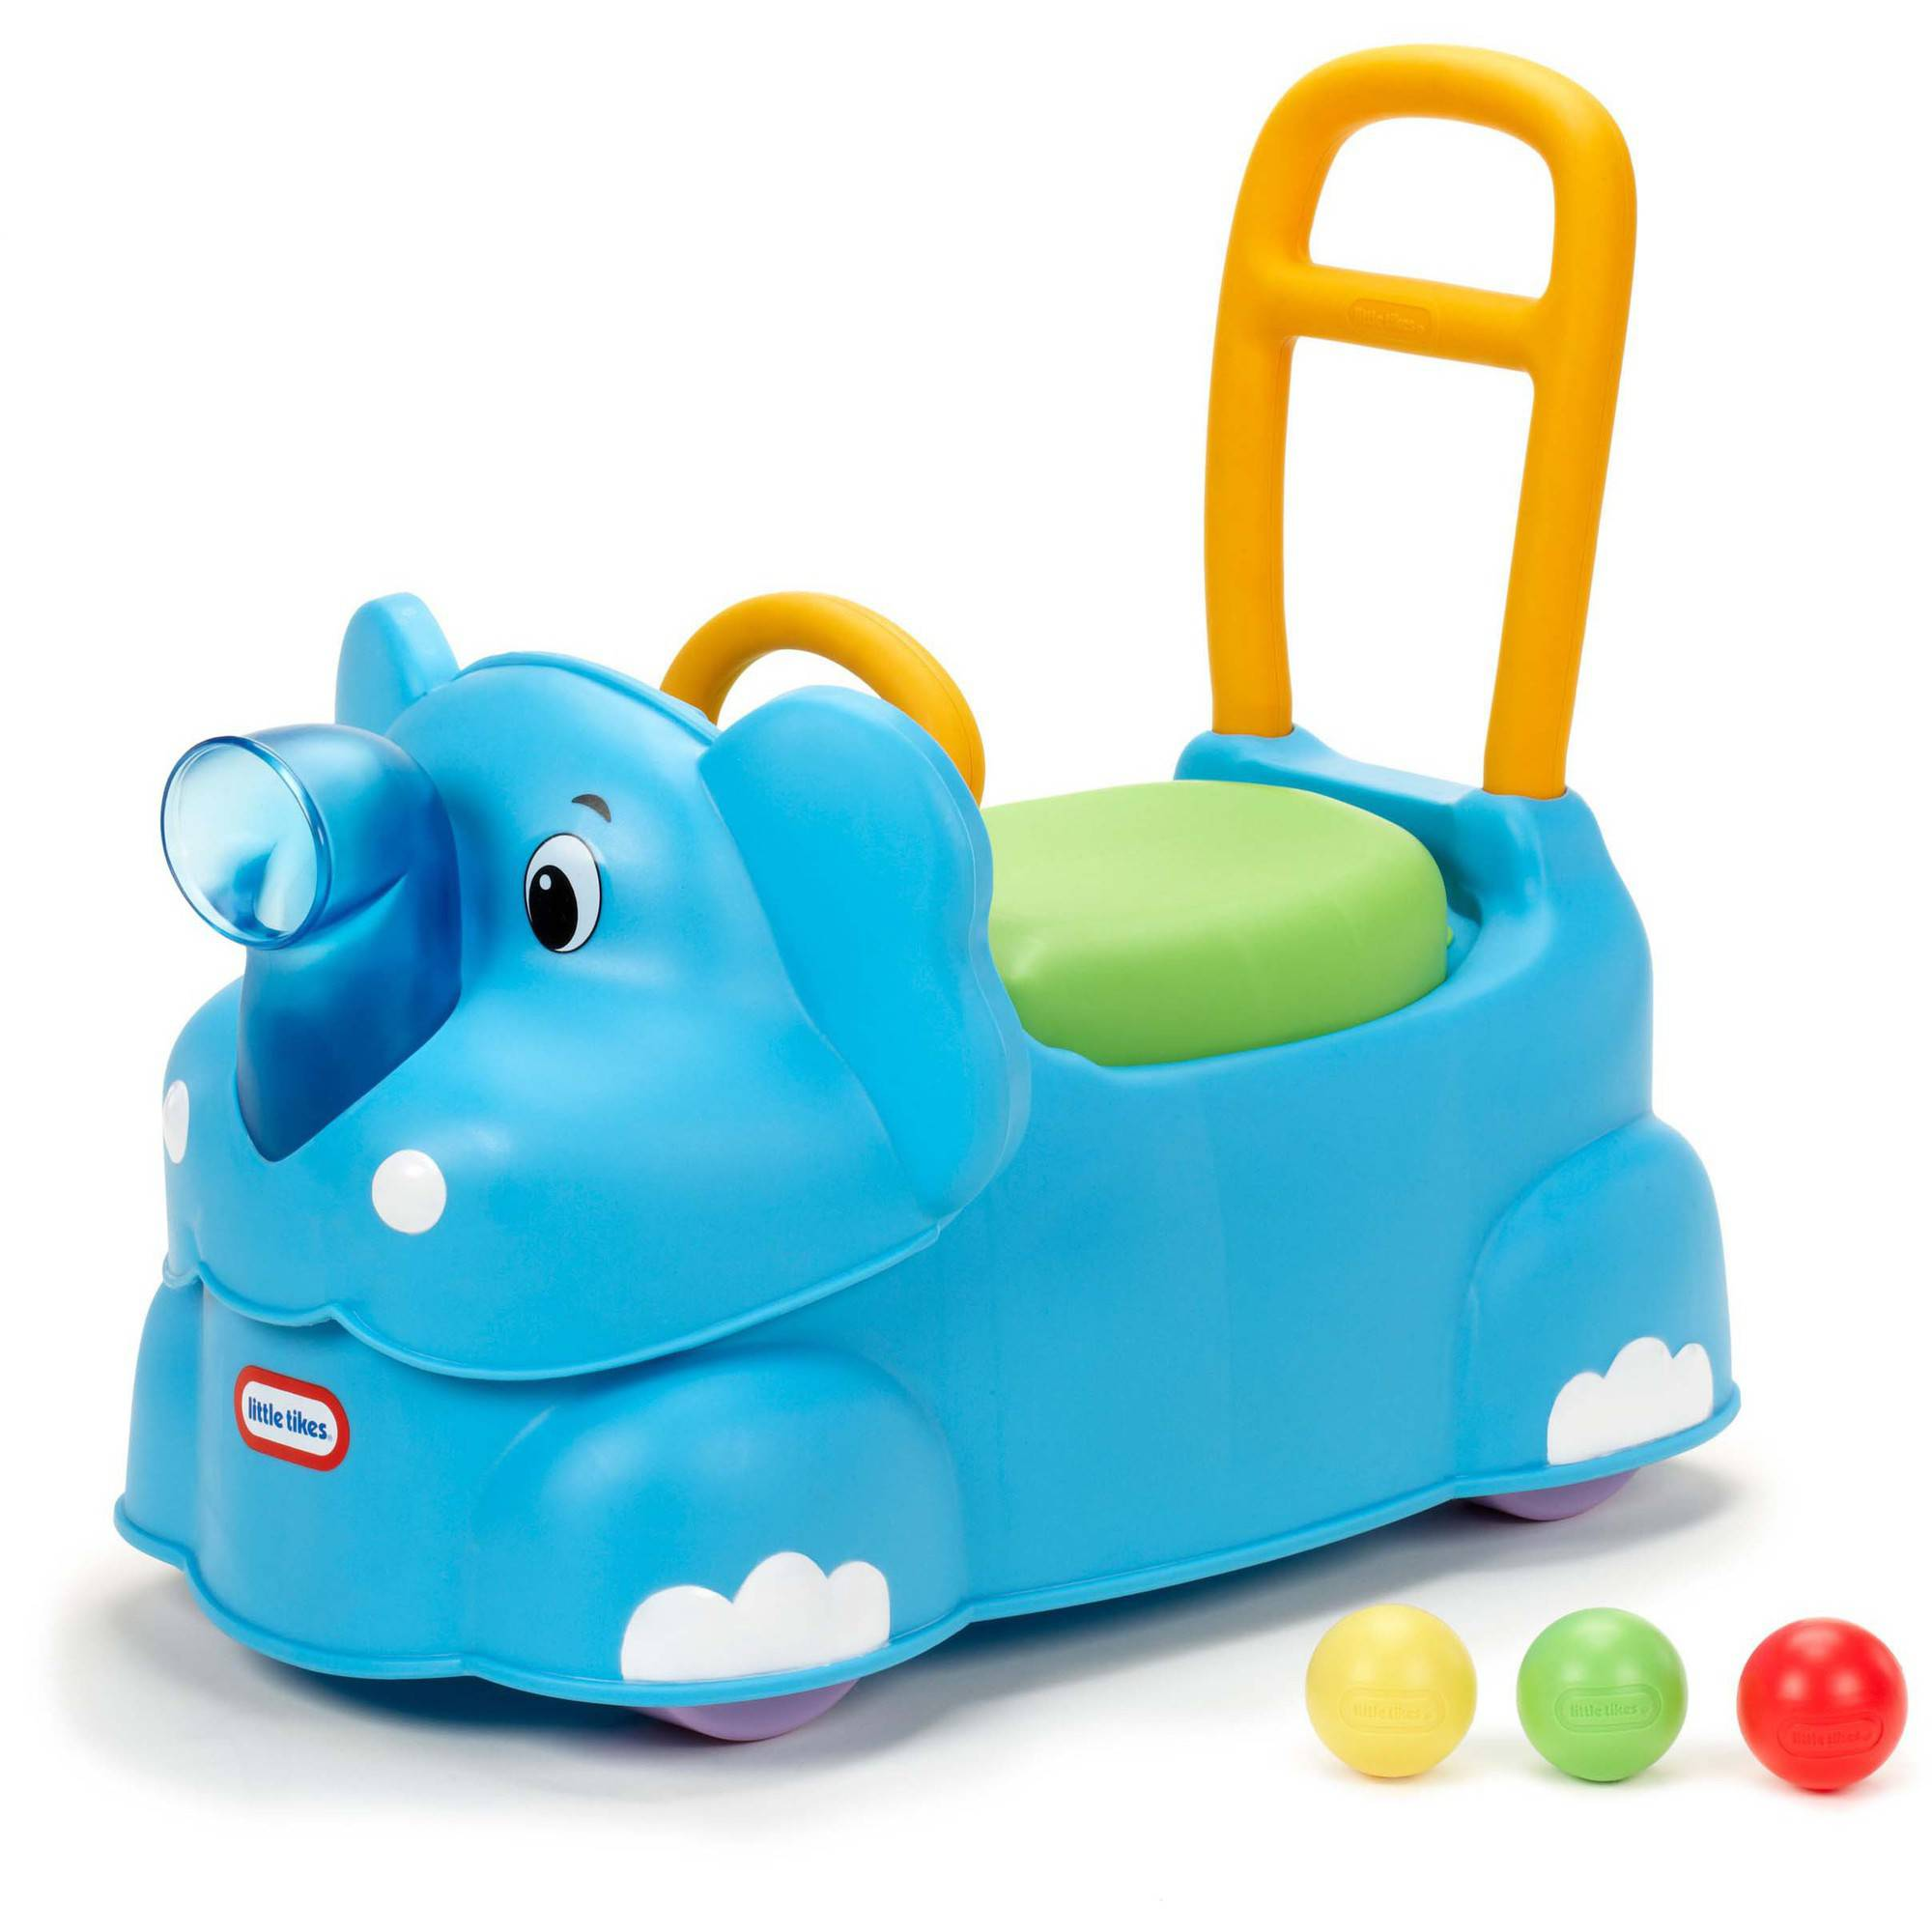 Little Tikes Scoot Around Elephant Riding Push Toy